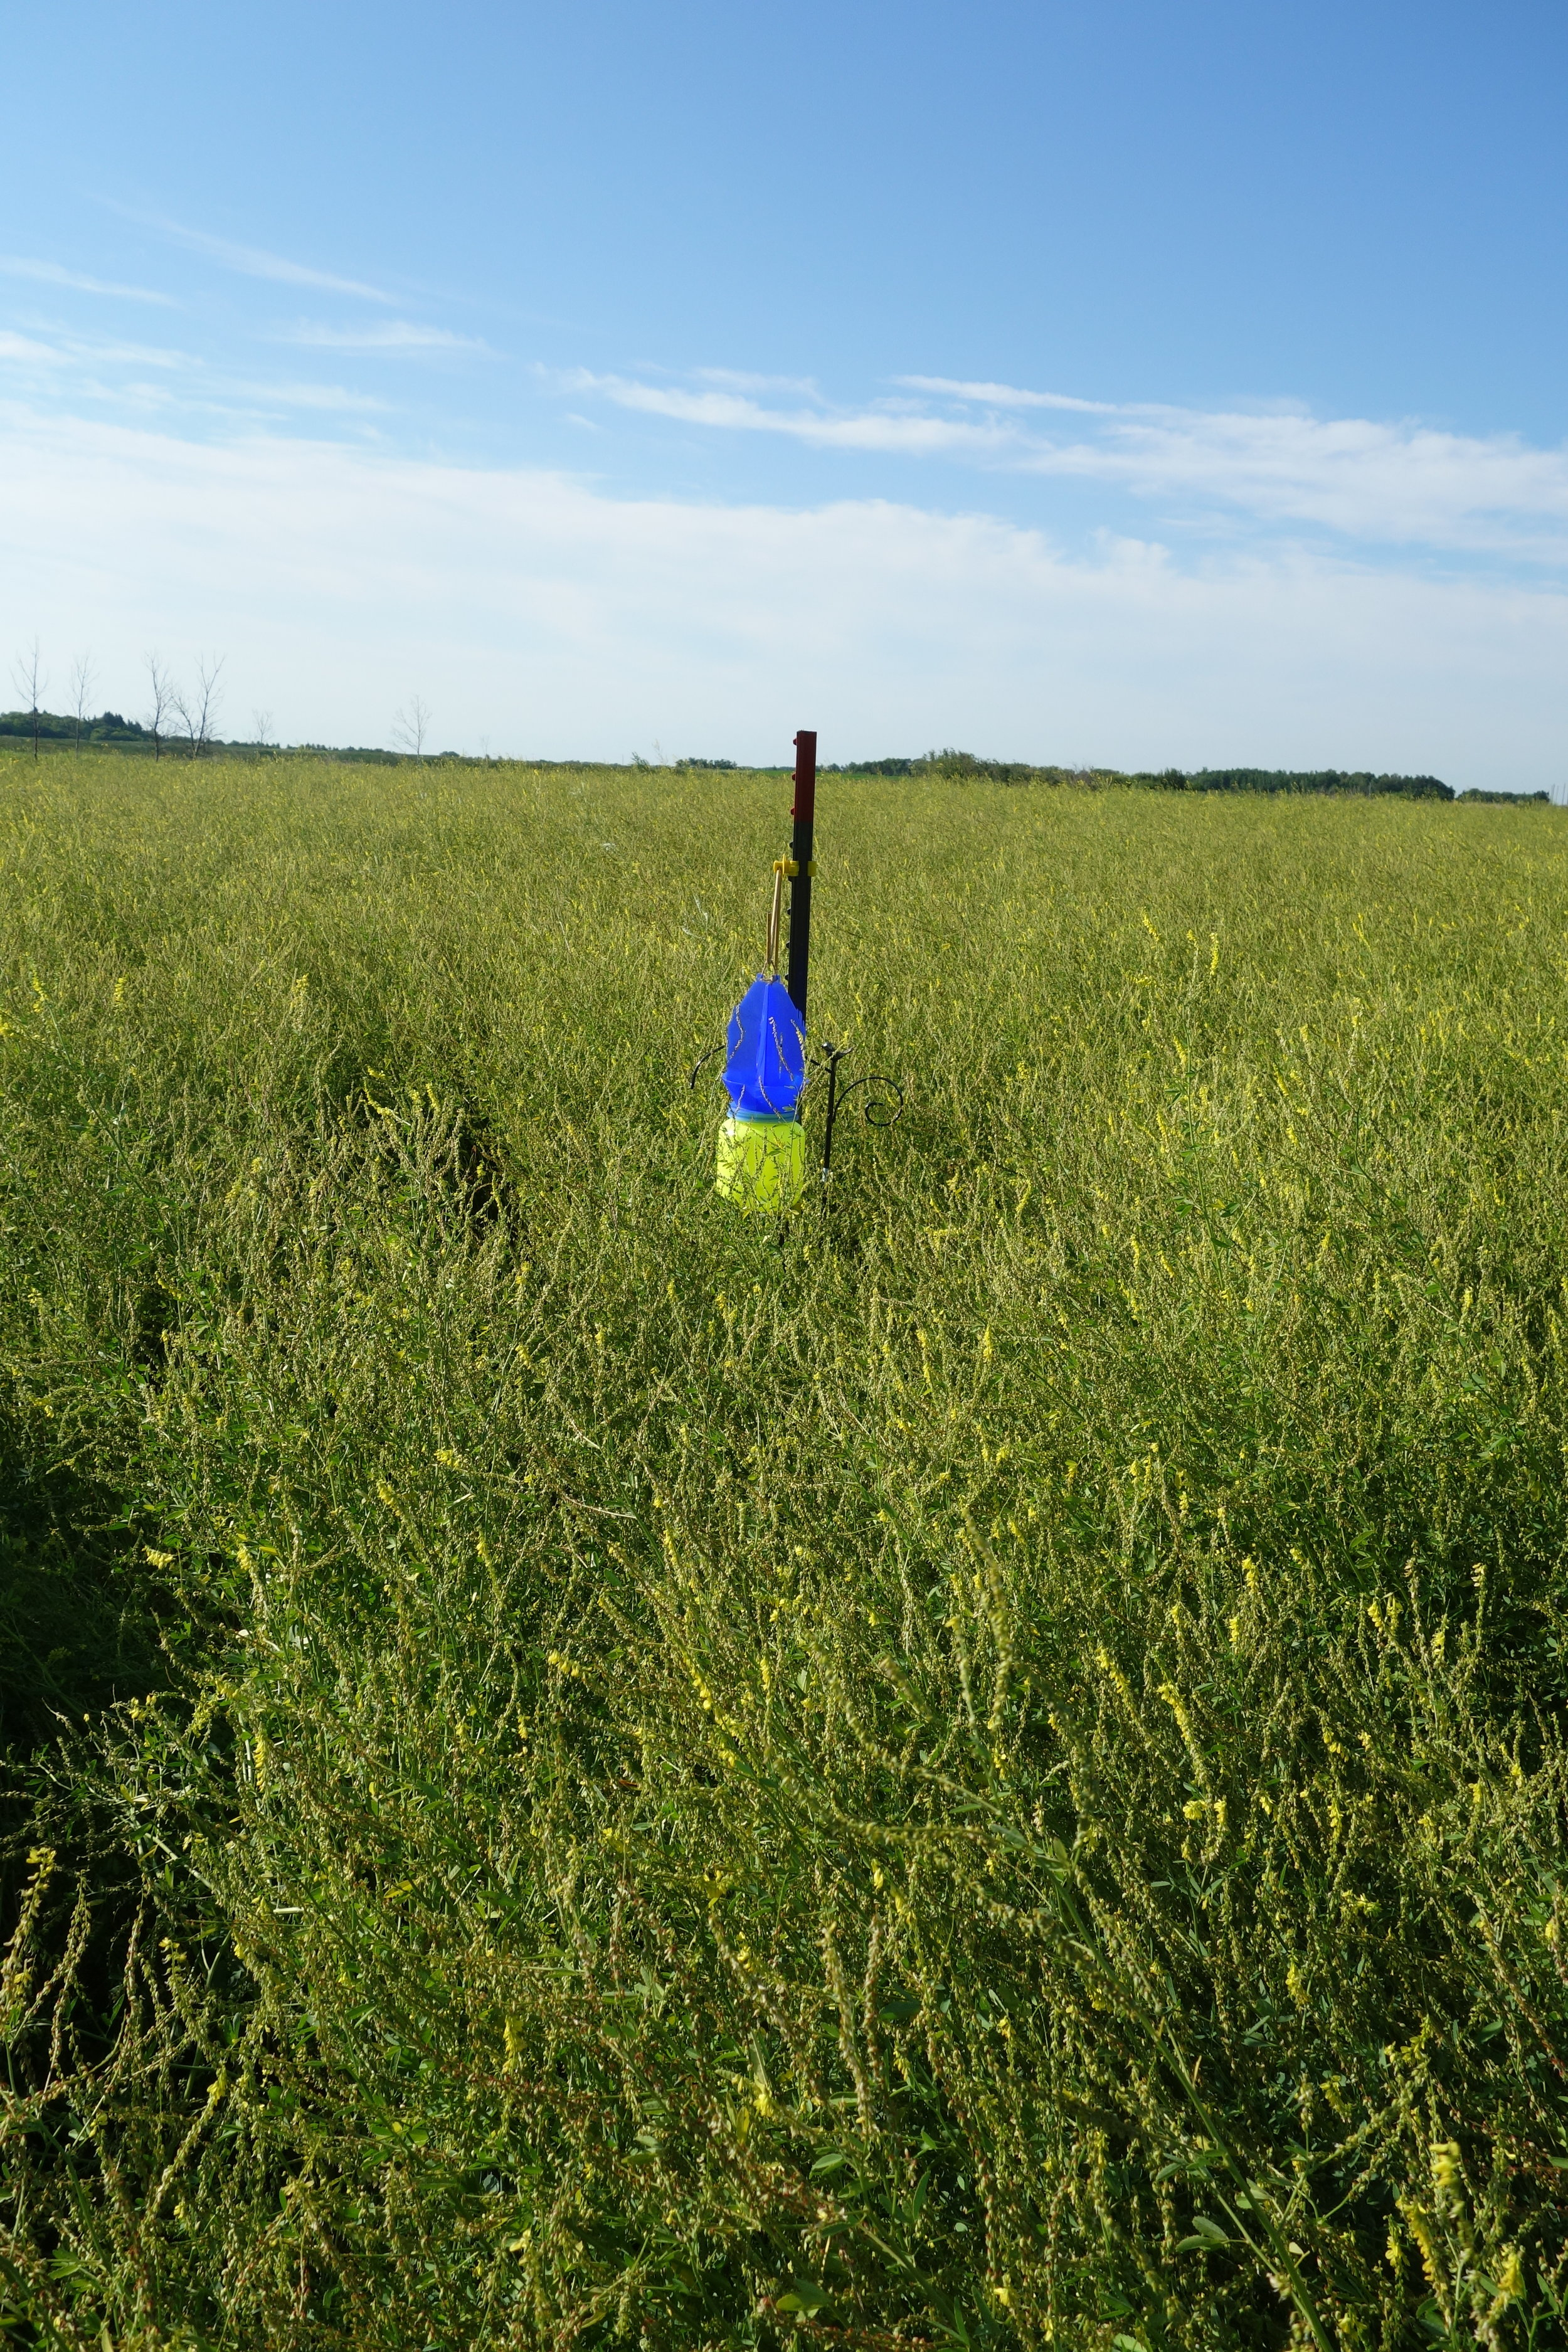 Pollinator collection with the blue vane trap at Brookdale farm